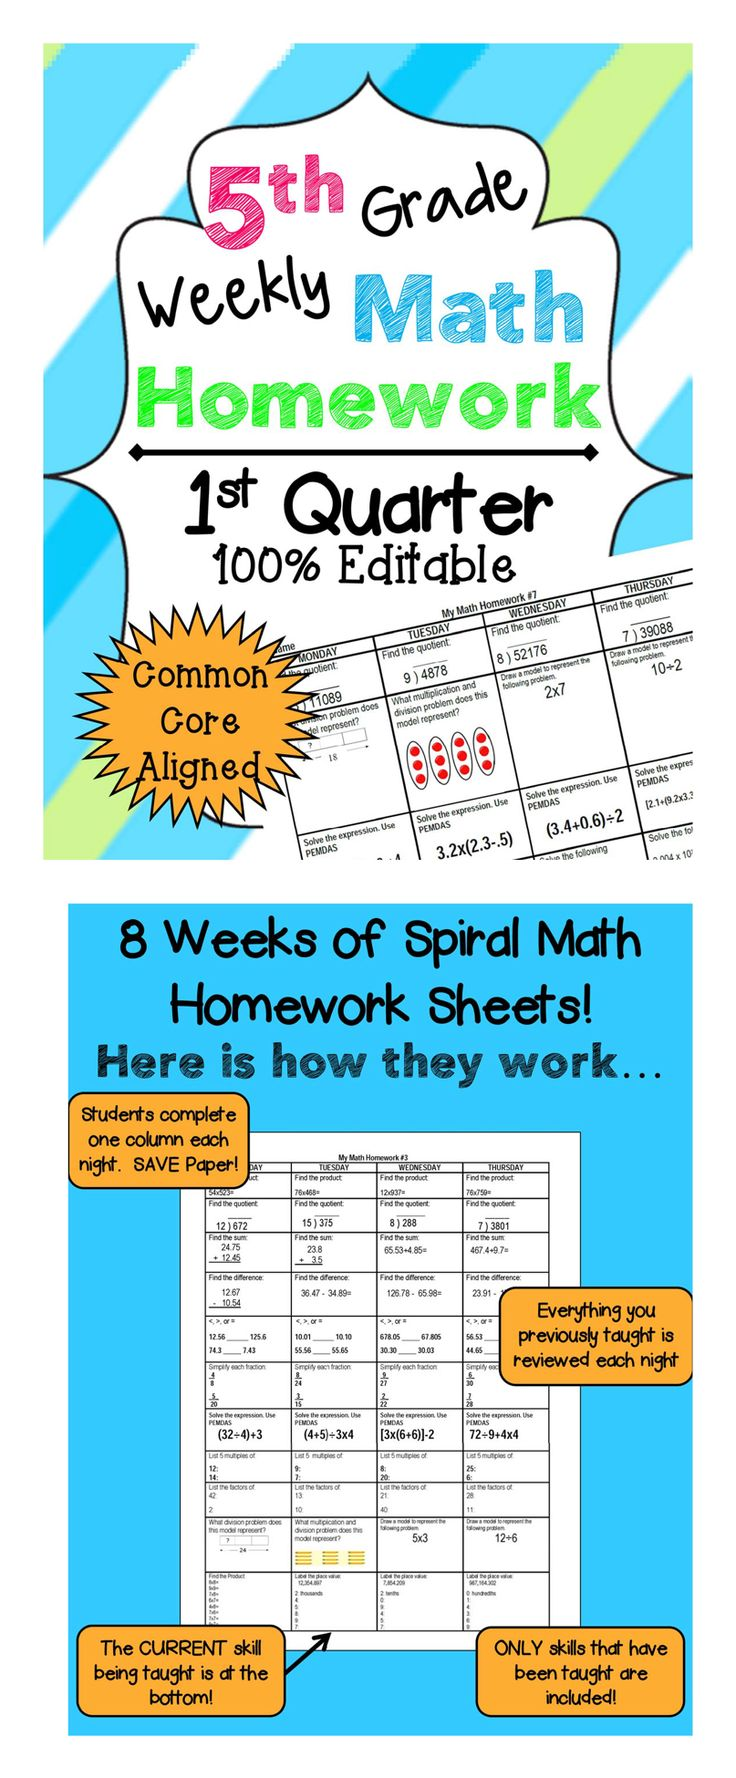 54 best Math images on Pinterest | Learning, Elementary schools and ...